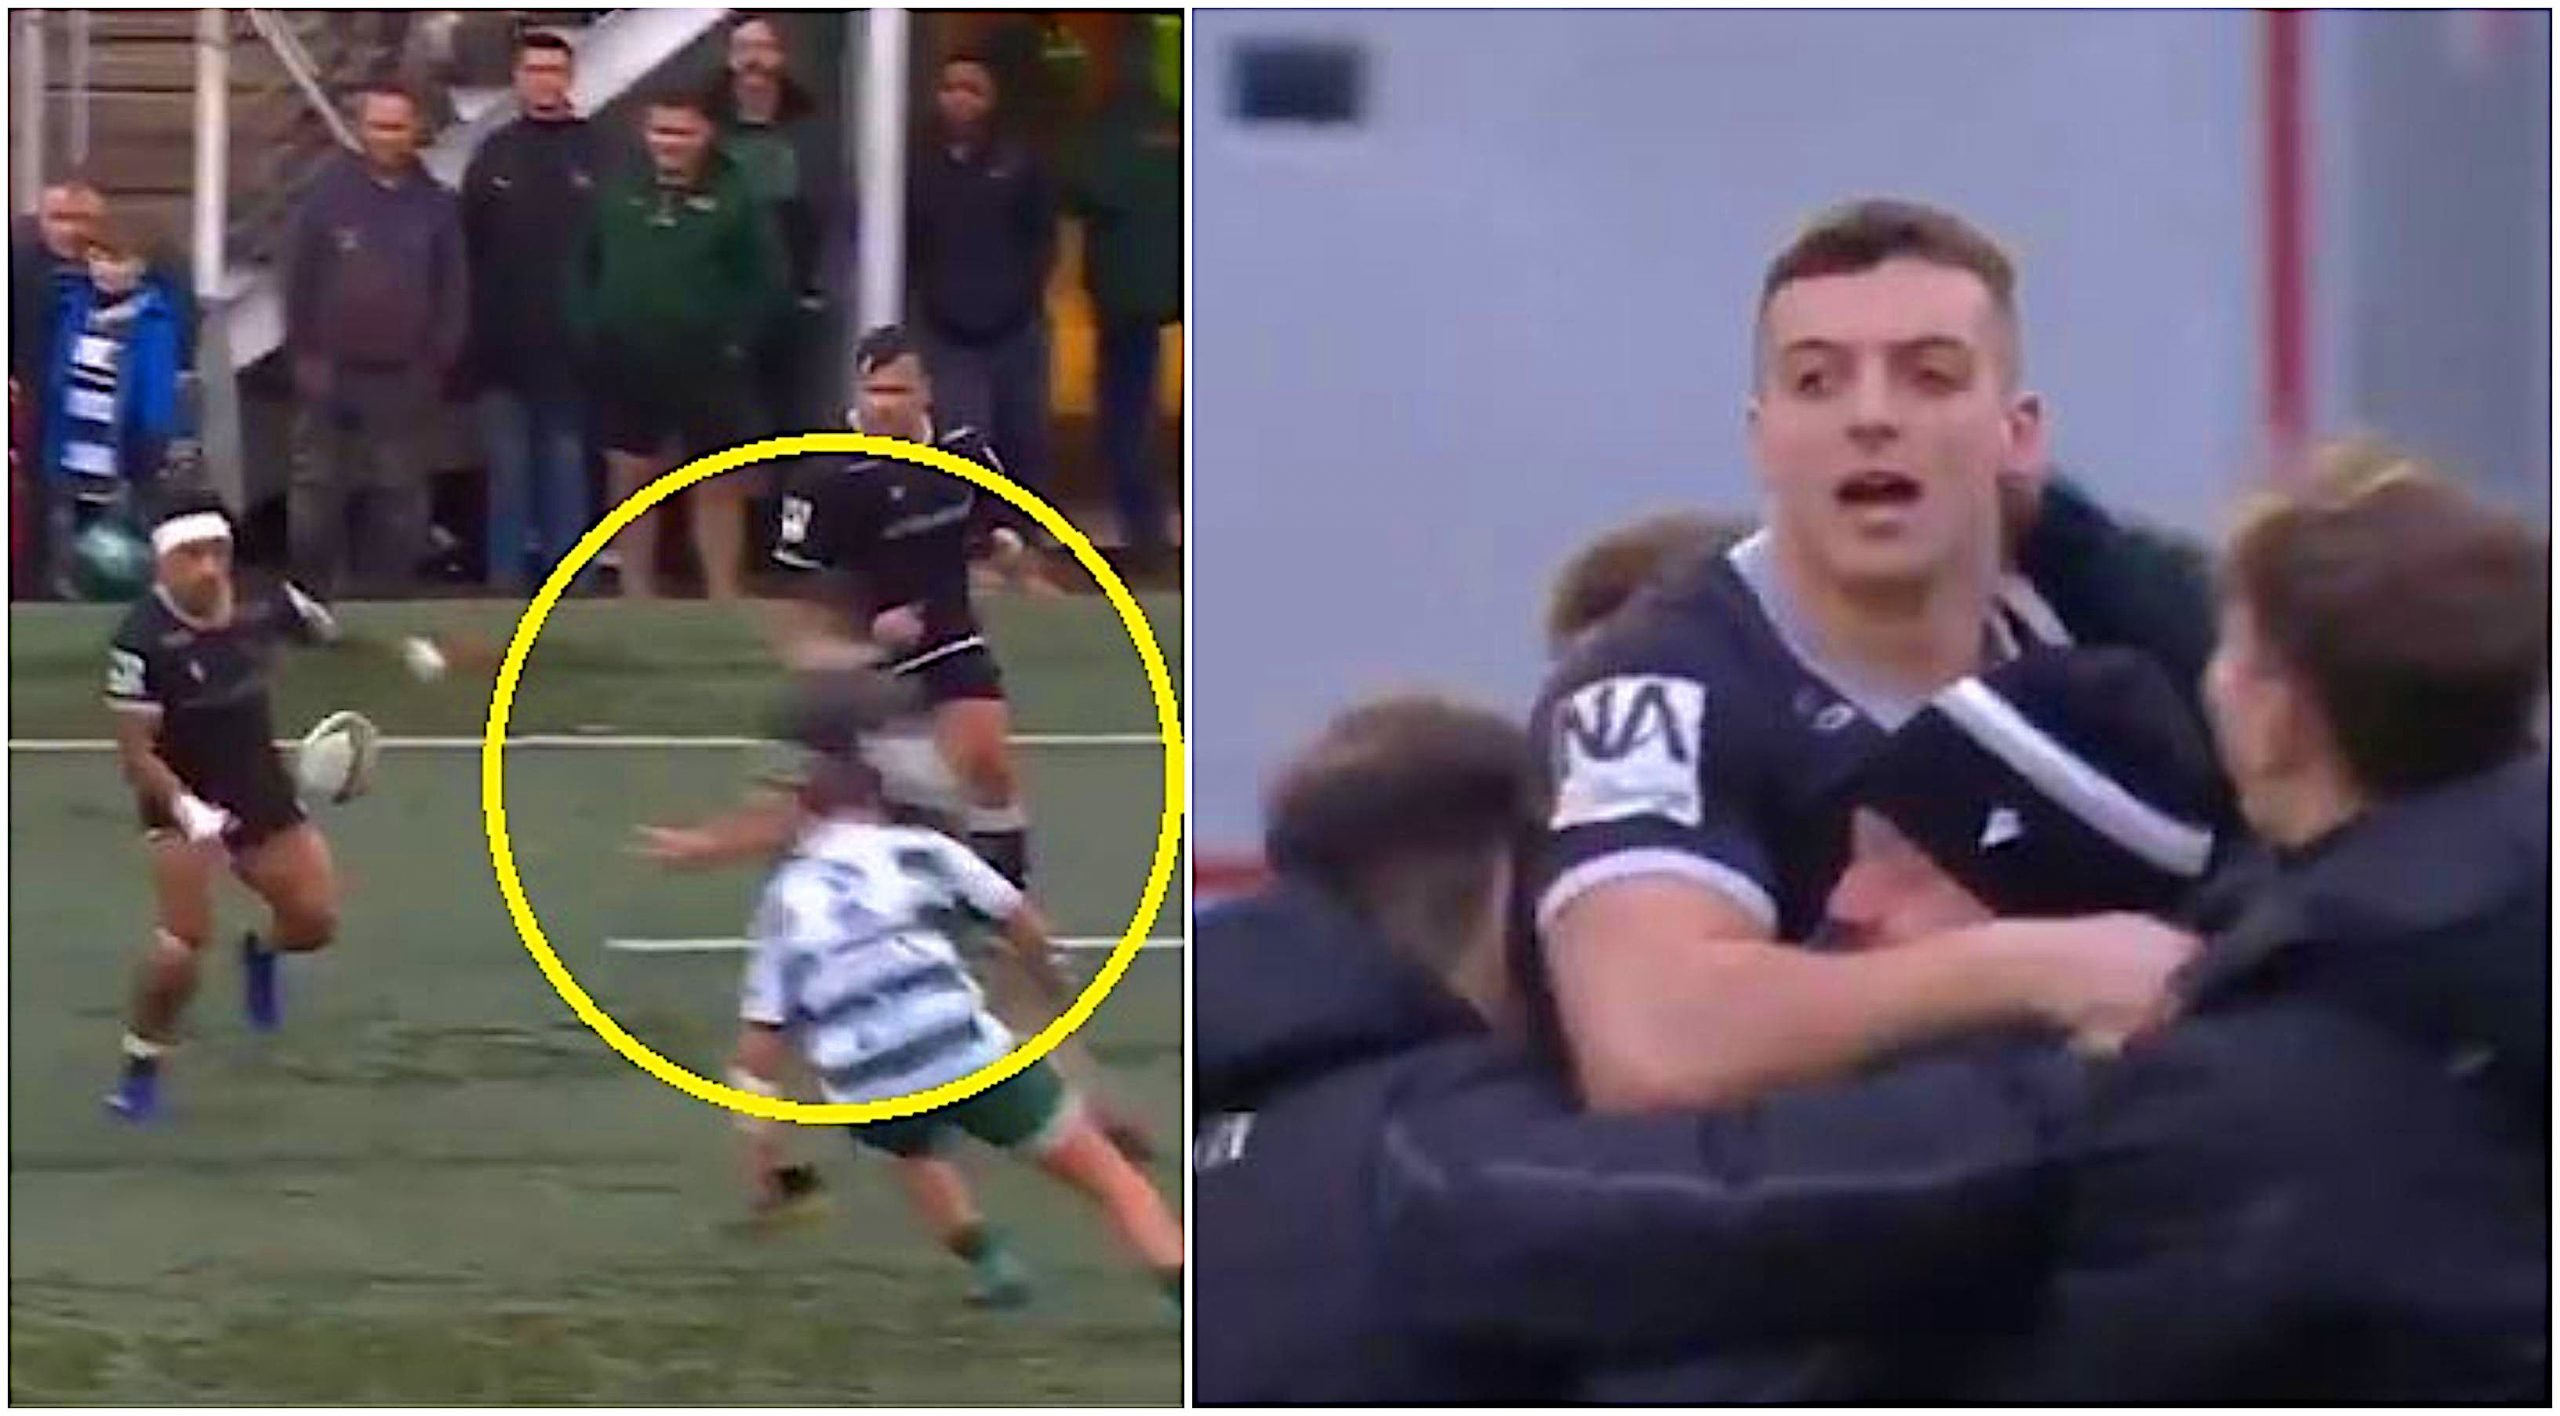 'Oh wow' - Newcastle Falcons flyer's 55m solo worldie defies physics